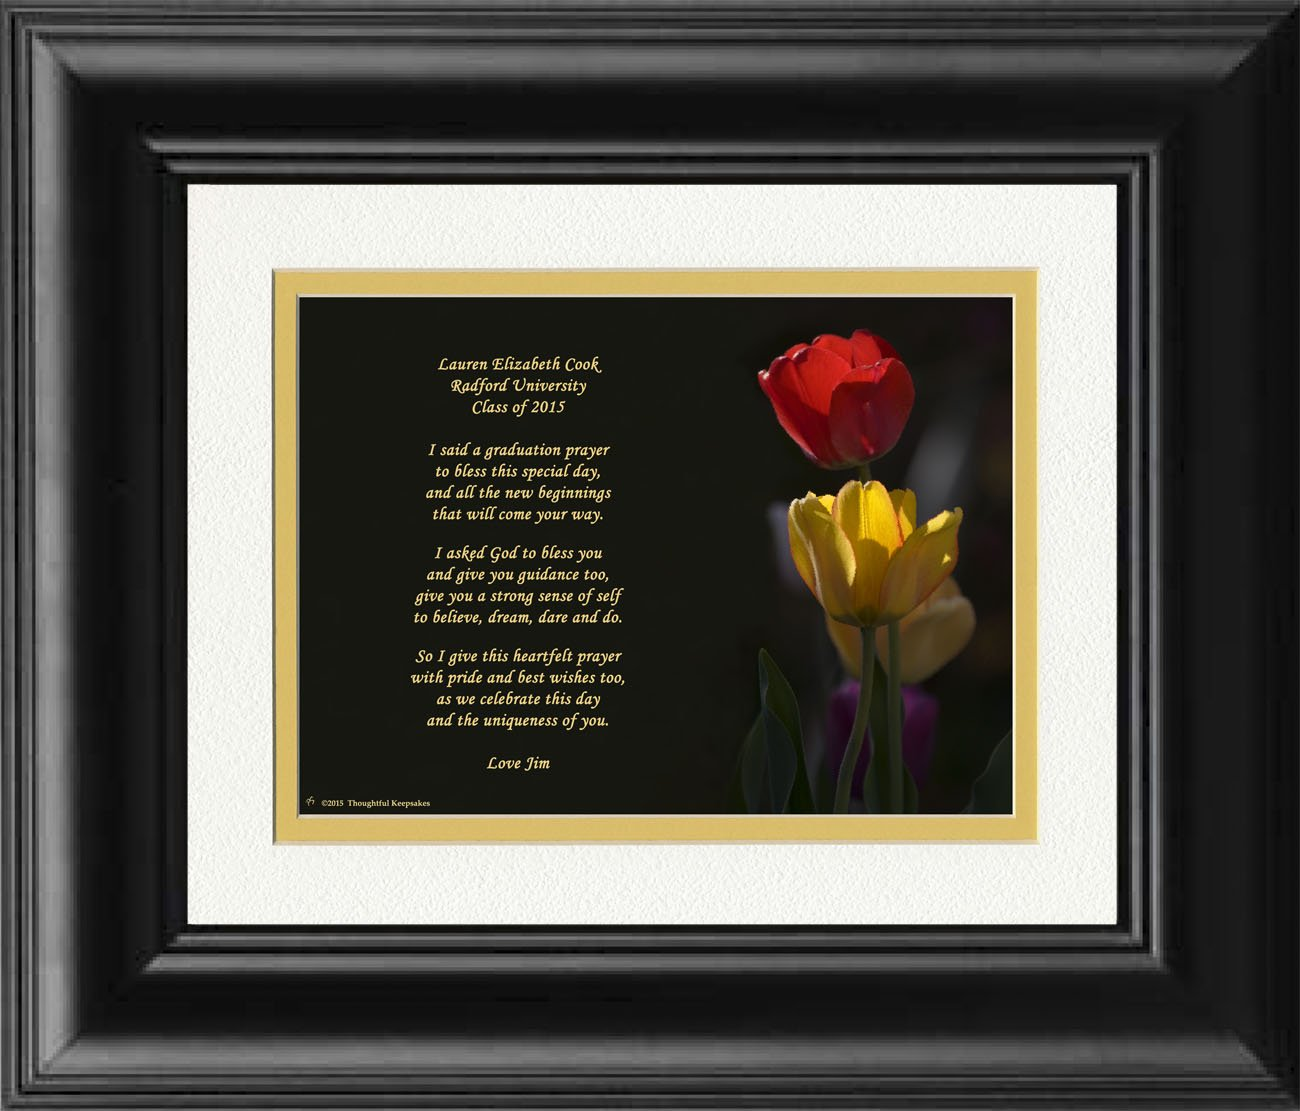 Framed Personalized Graduation Gift with ''Graduation Prayer Poem'' Tulips Photo, 8x10 Double Matted. A Special Keepsake Gift for Graduate